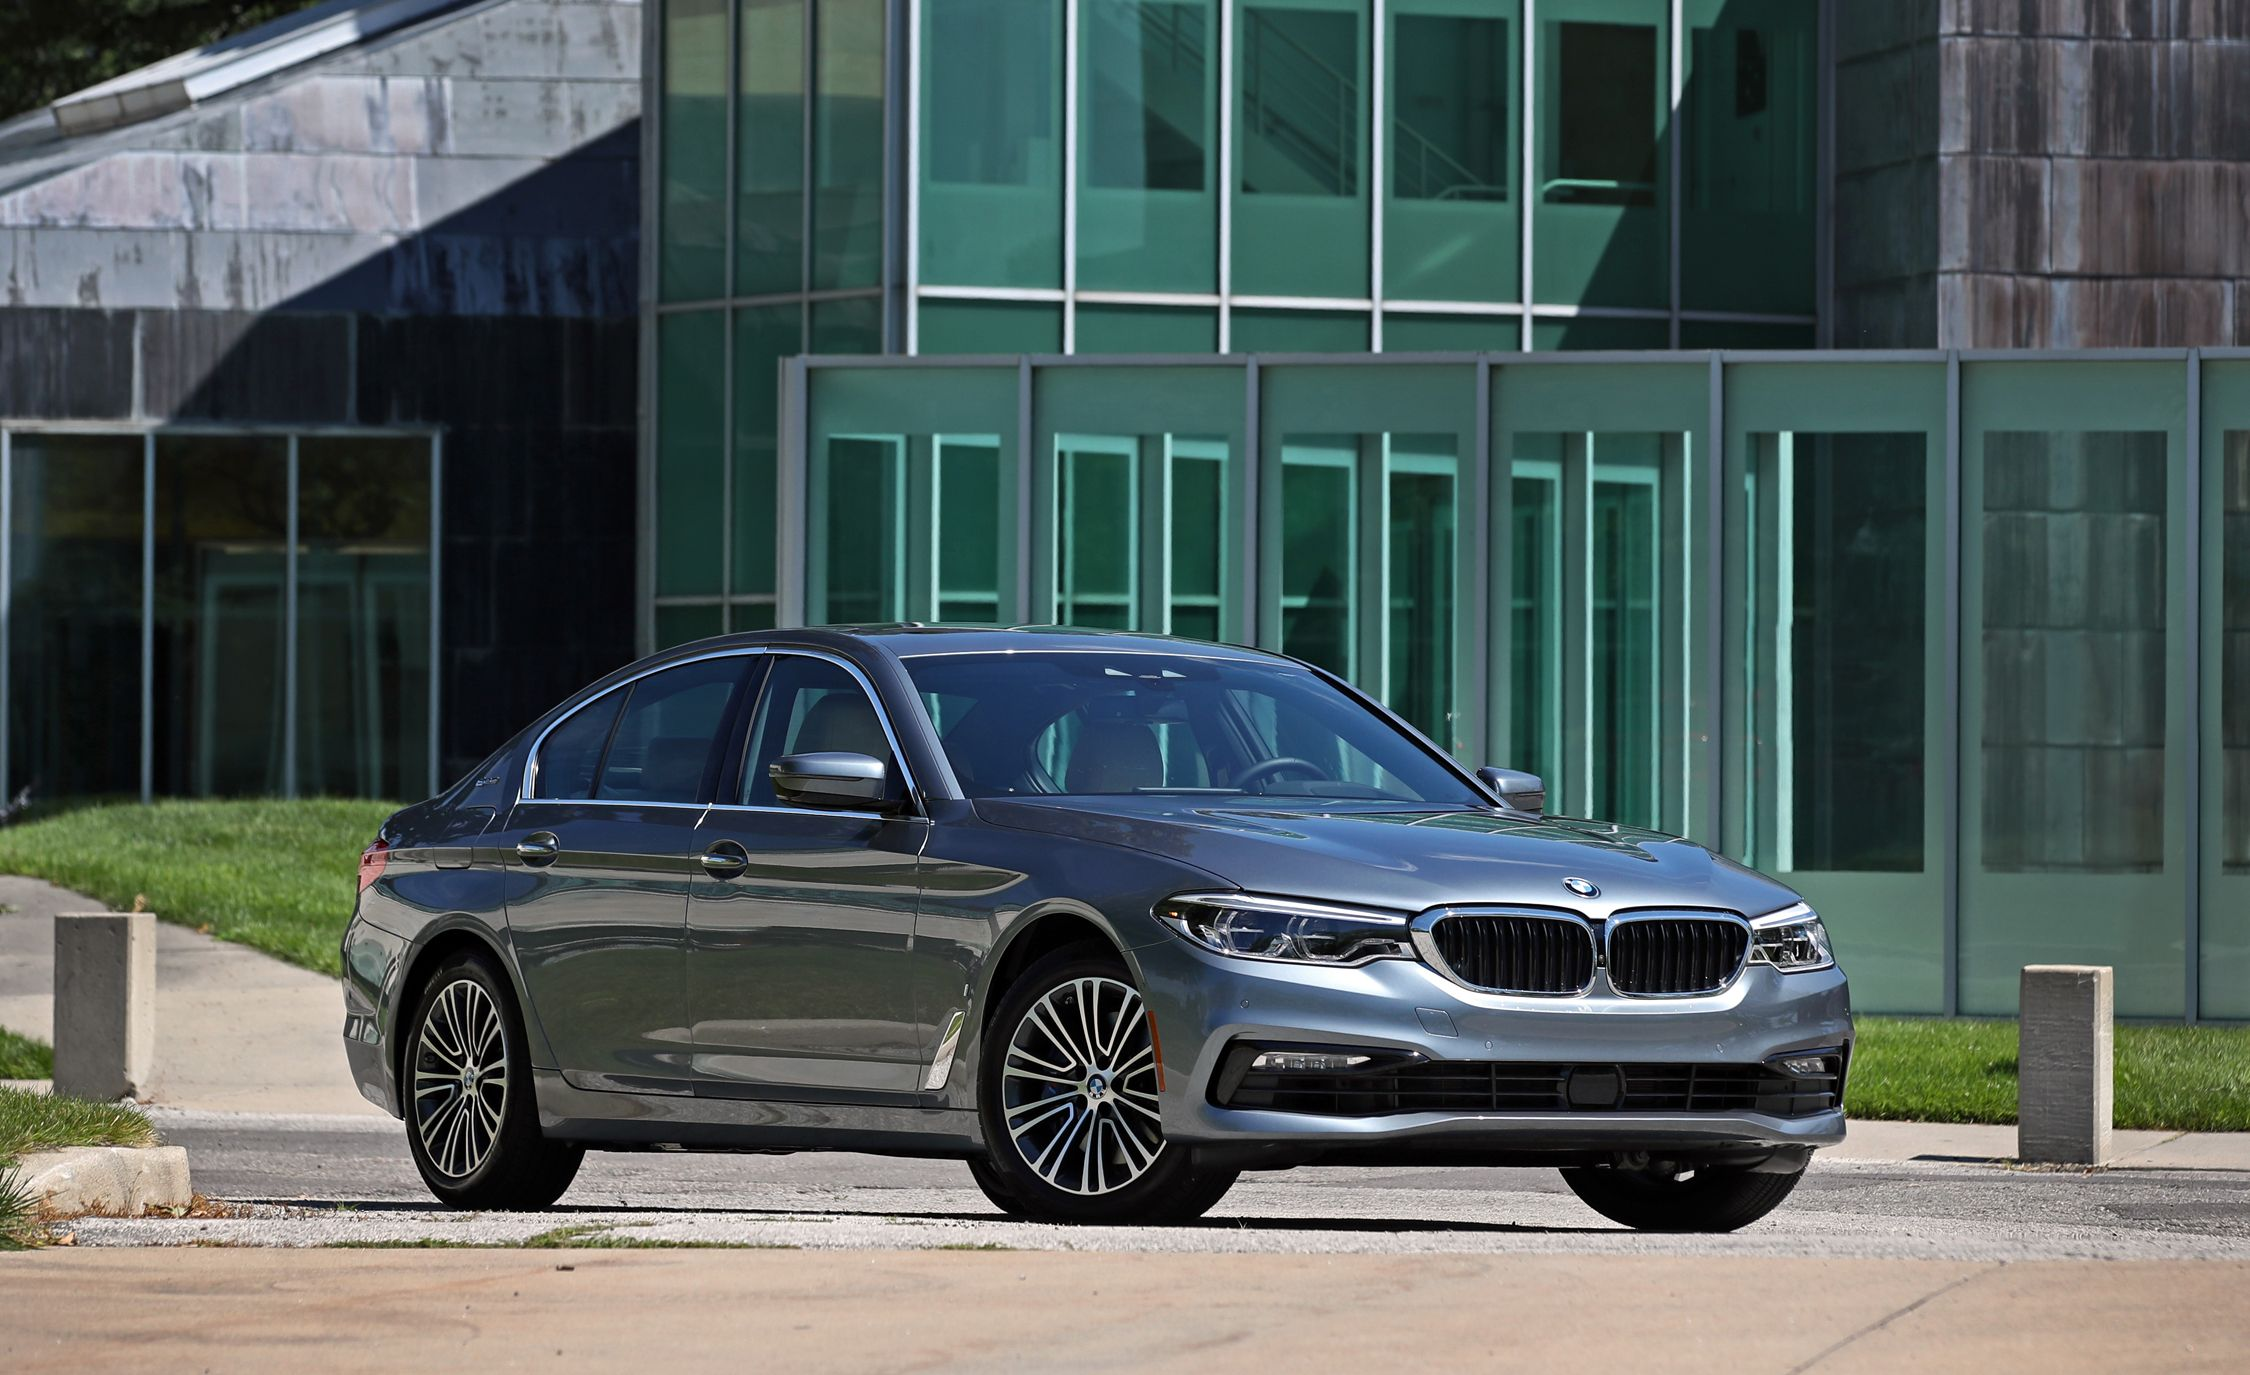 BMW 5 Series: Storage compartments in the cargo area